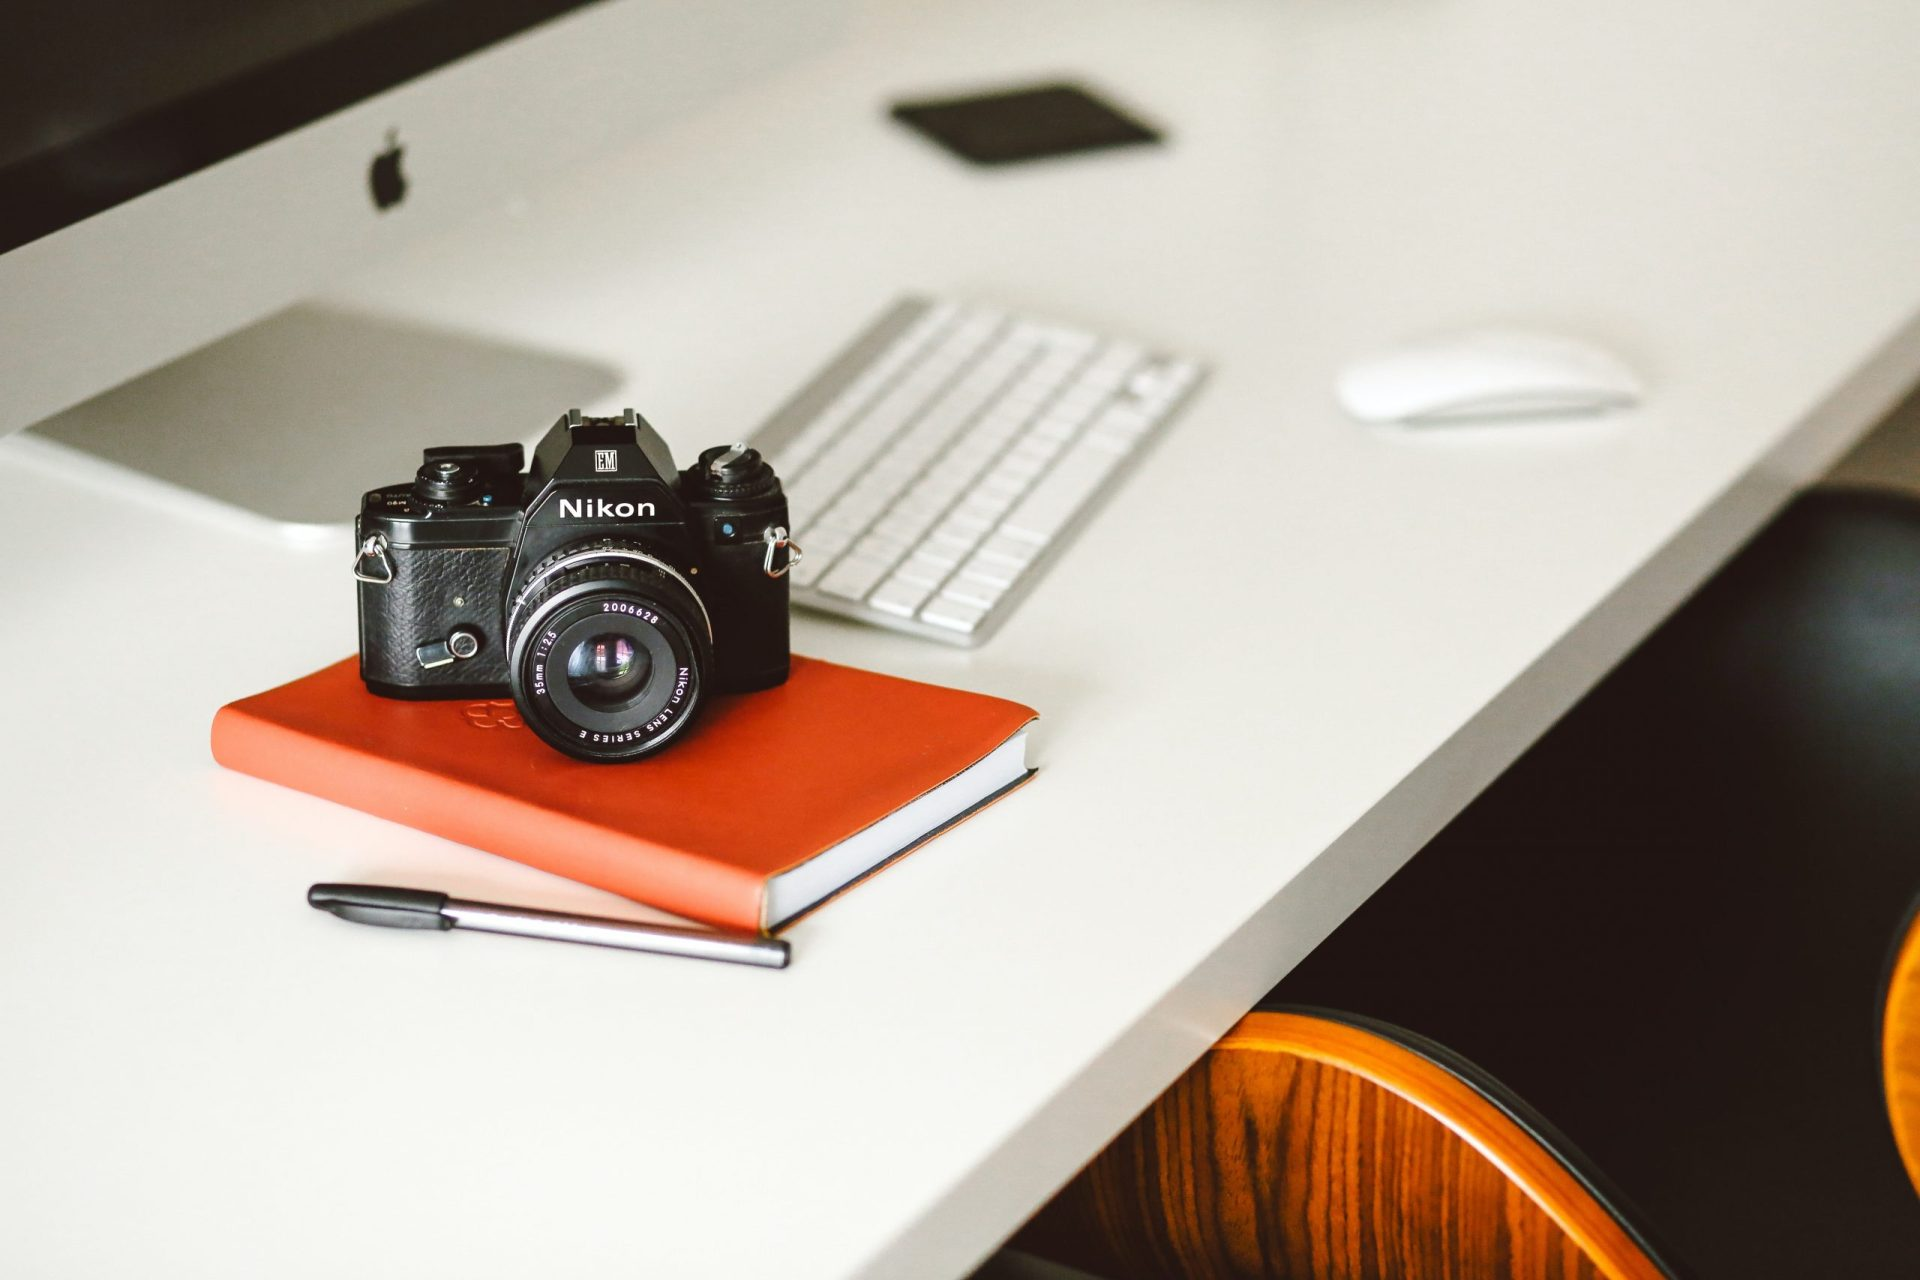 Gears Needed For Photography in Business